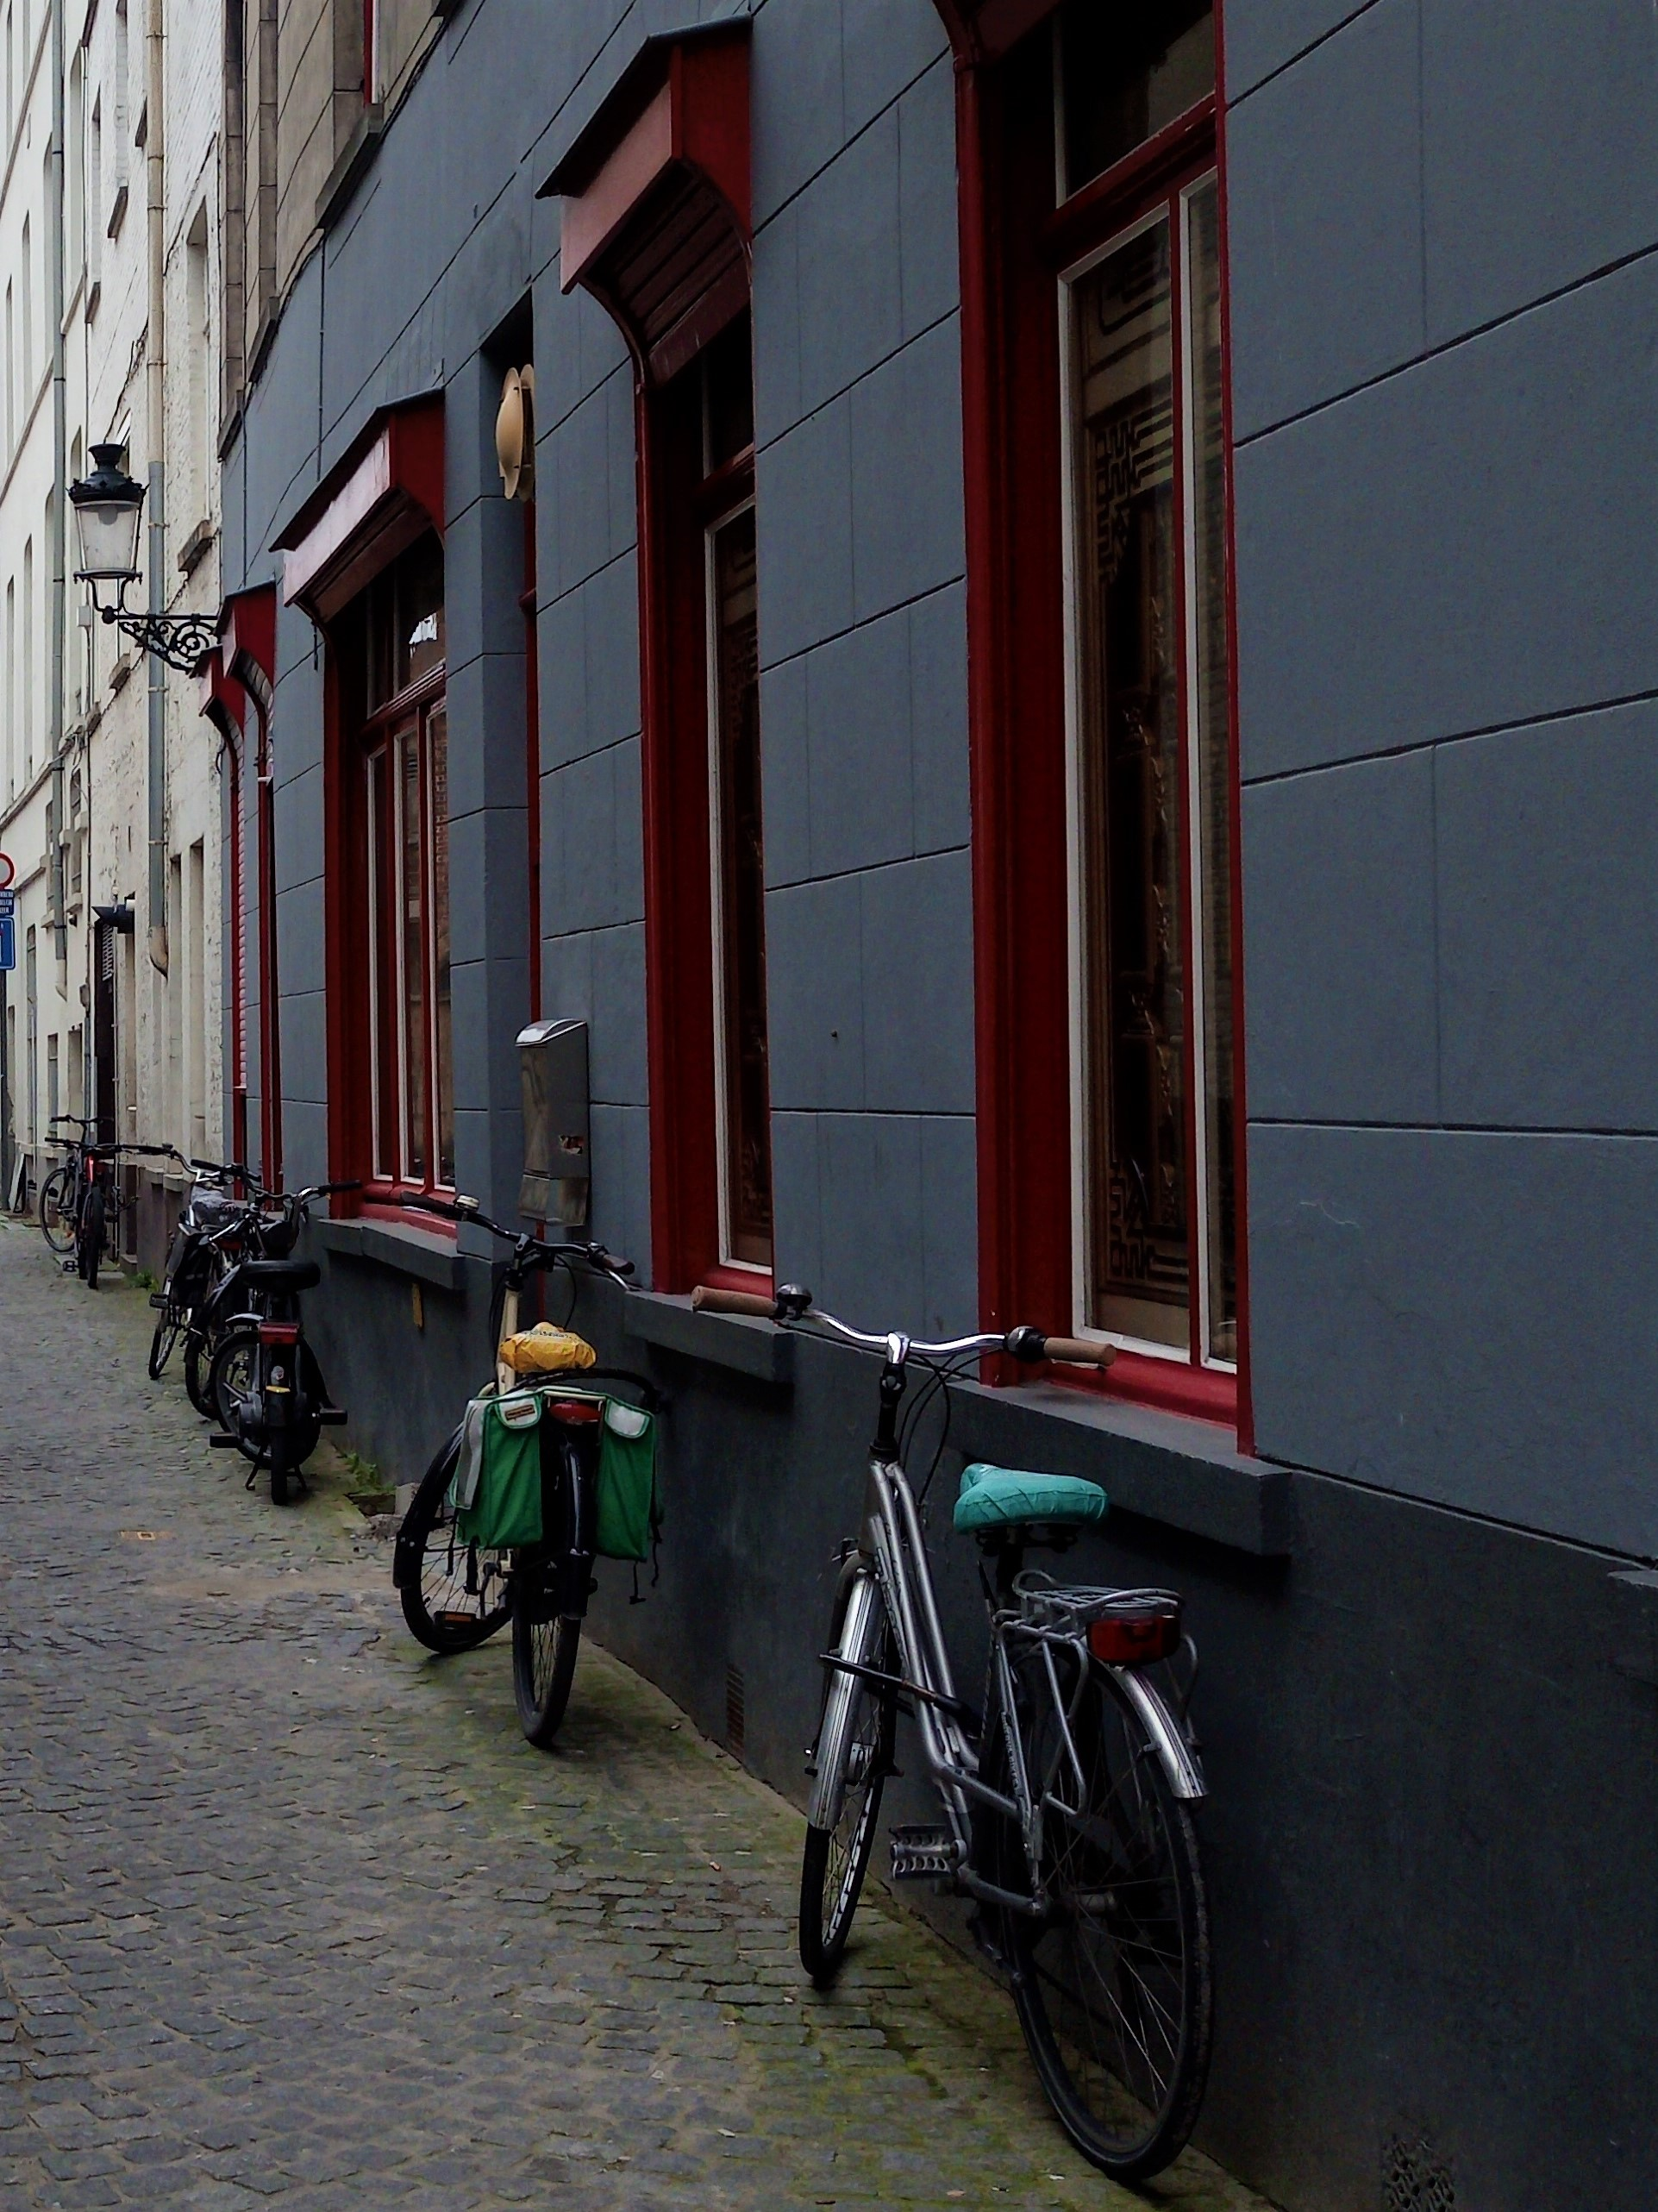 Bicycles in a Belgian street